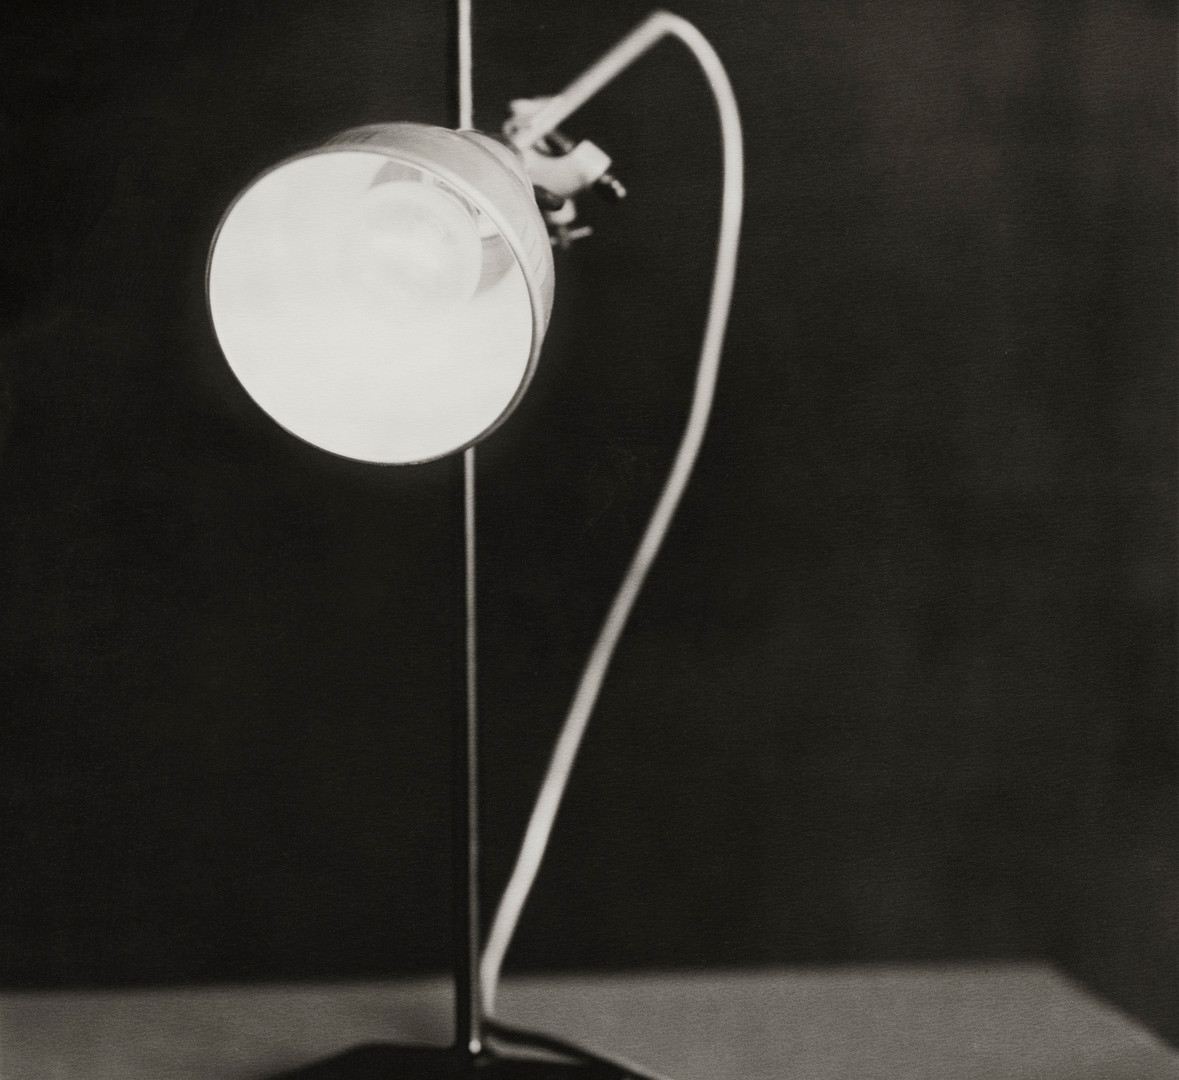 Paolo Roversi, Lamp, Paris, 2006